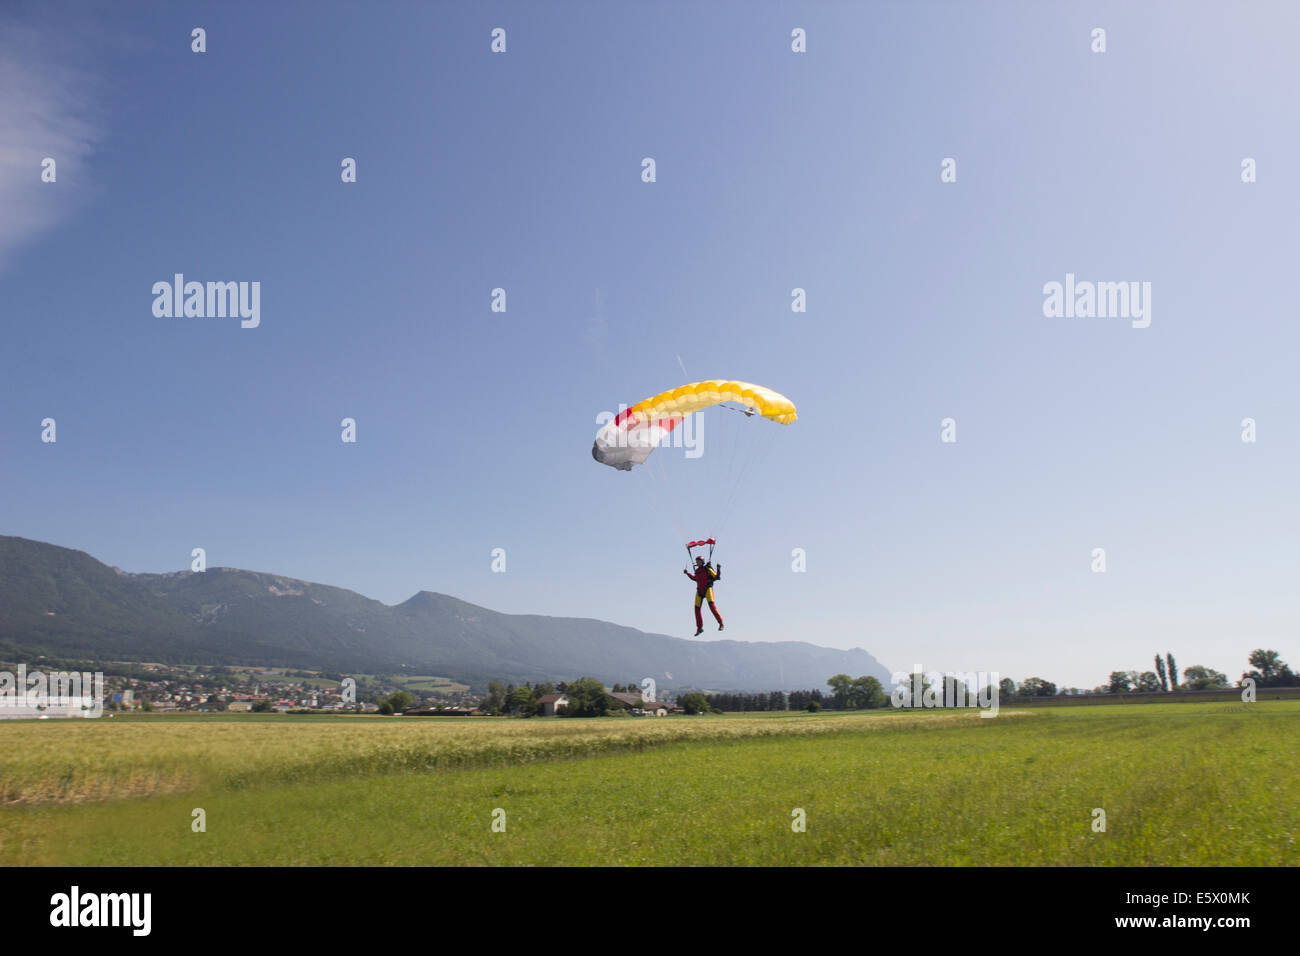 Female skydiver parachuting into field, approaching the landing zone, Grenchen, Berne, Switzerland - Stock Image